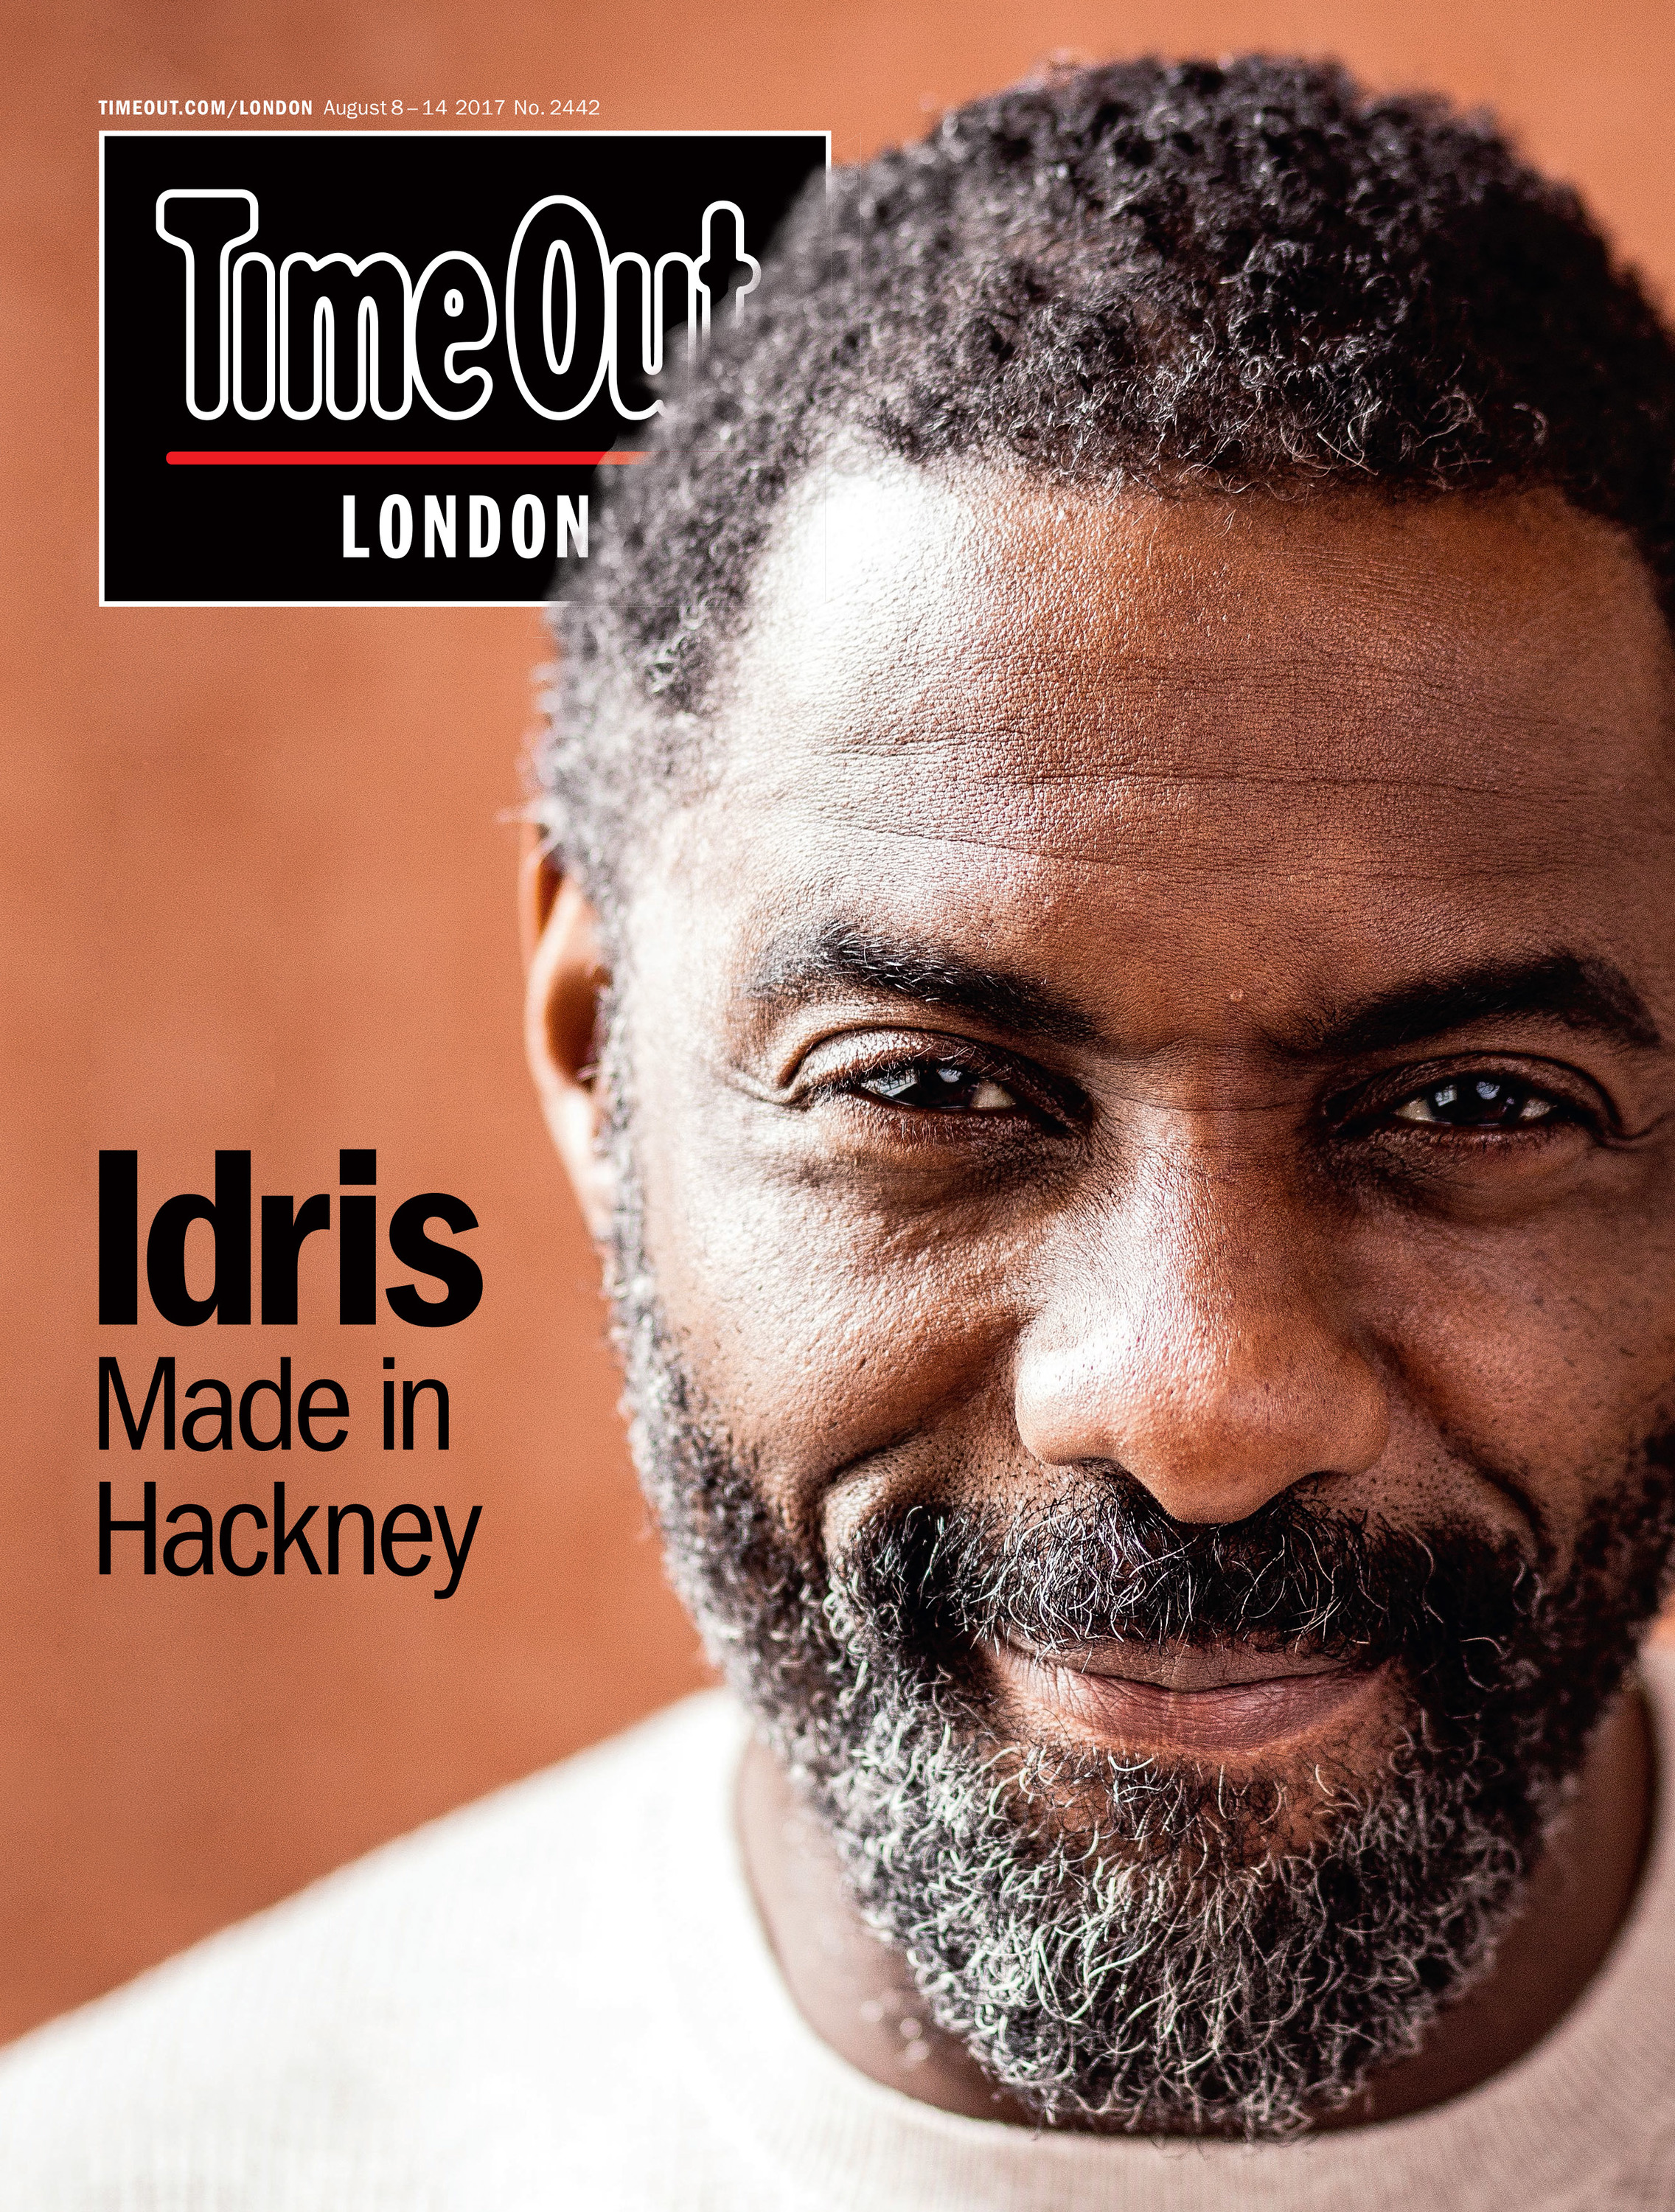 2442 COVER Idris Elba.indd